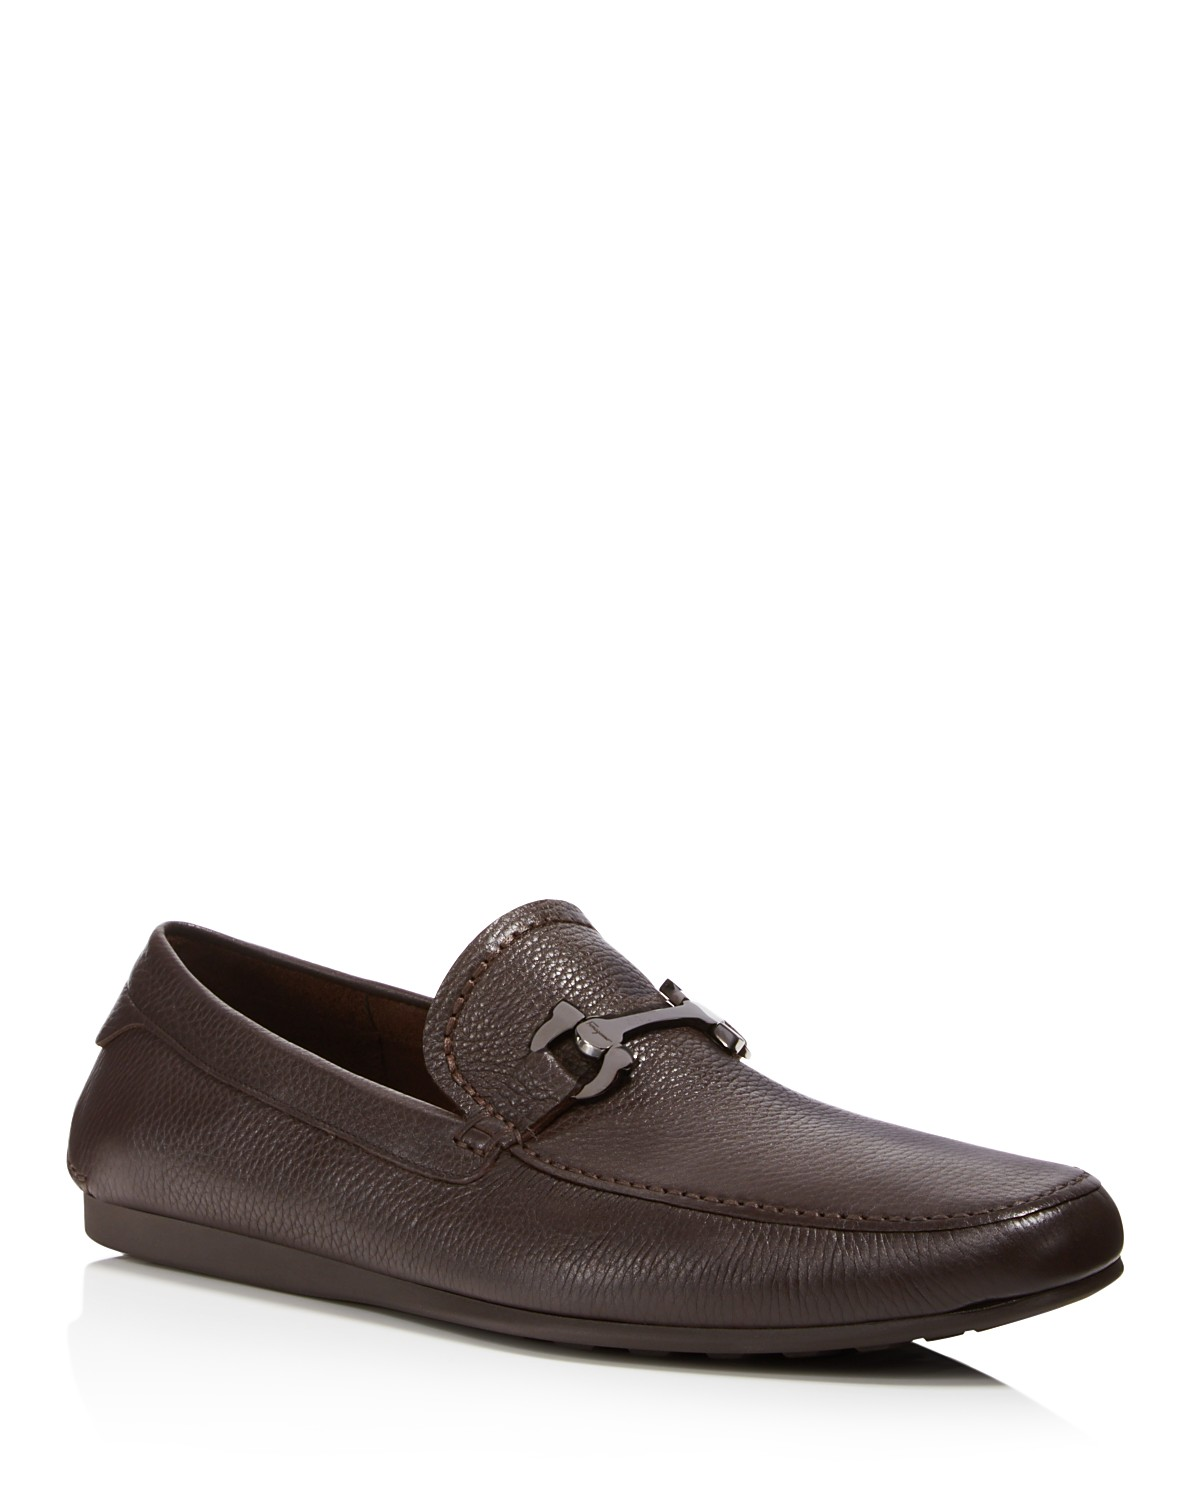 Salvatore FerragamoMen's Cancun 2 Gancini Tumbled Leather Drivers mf6lGKr